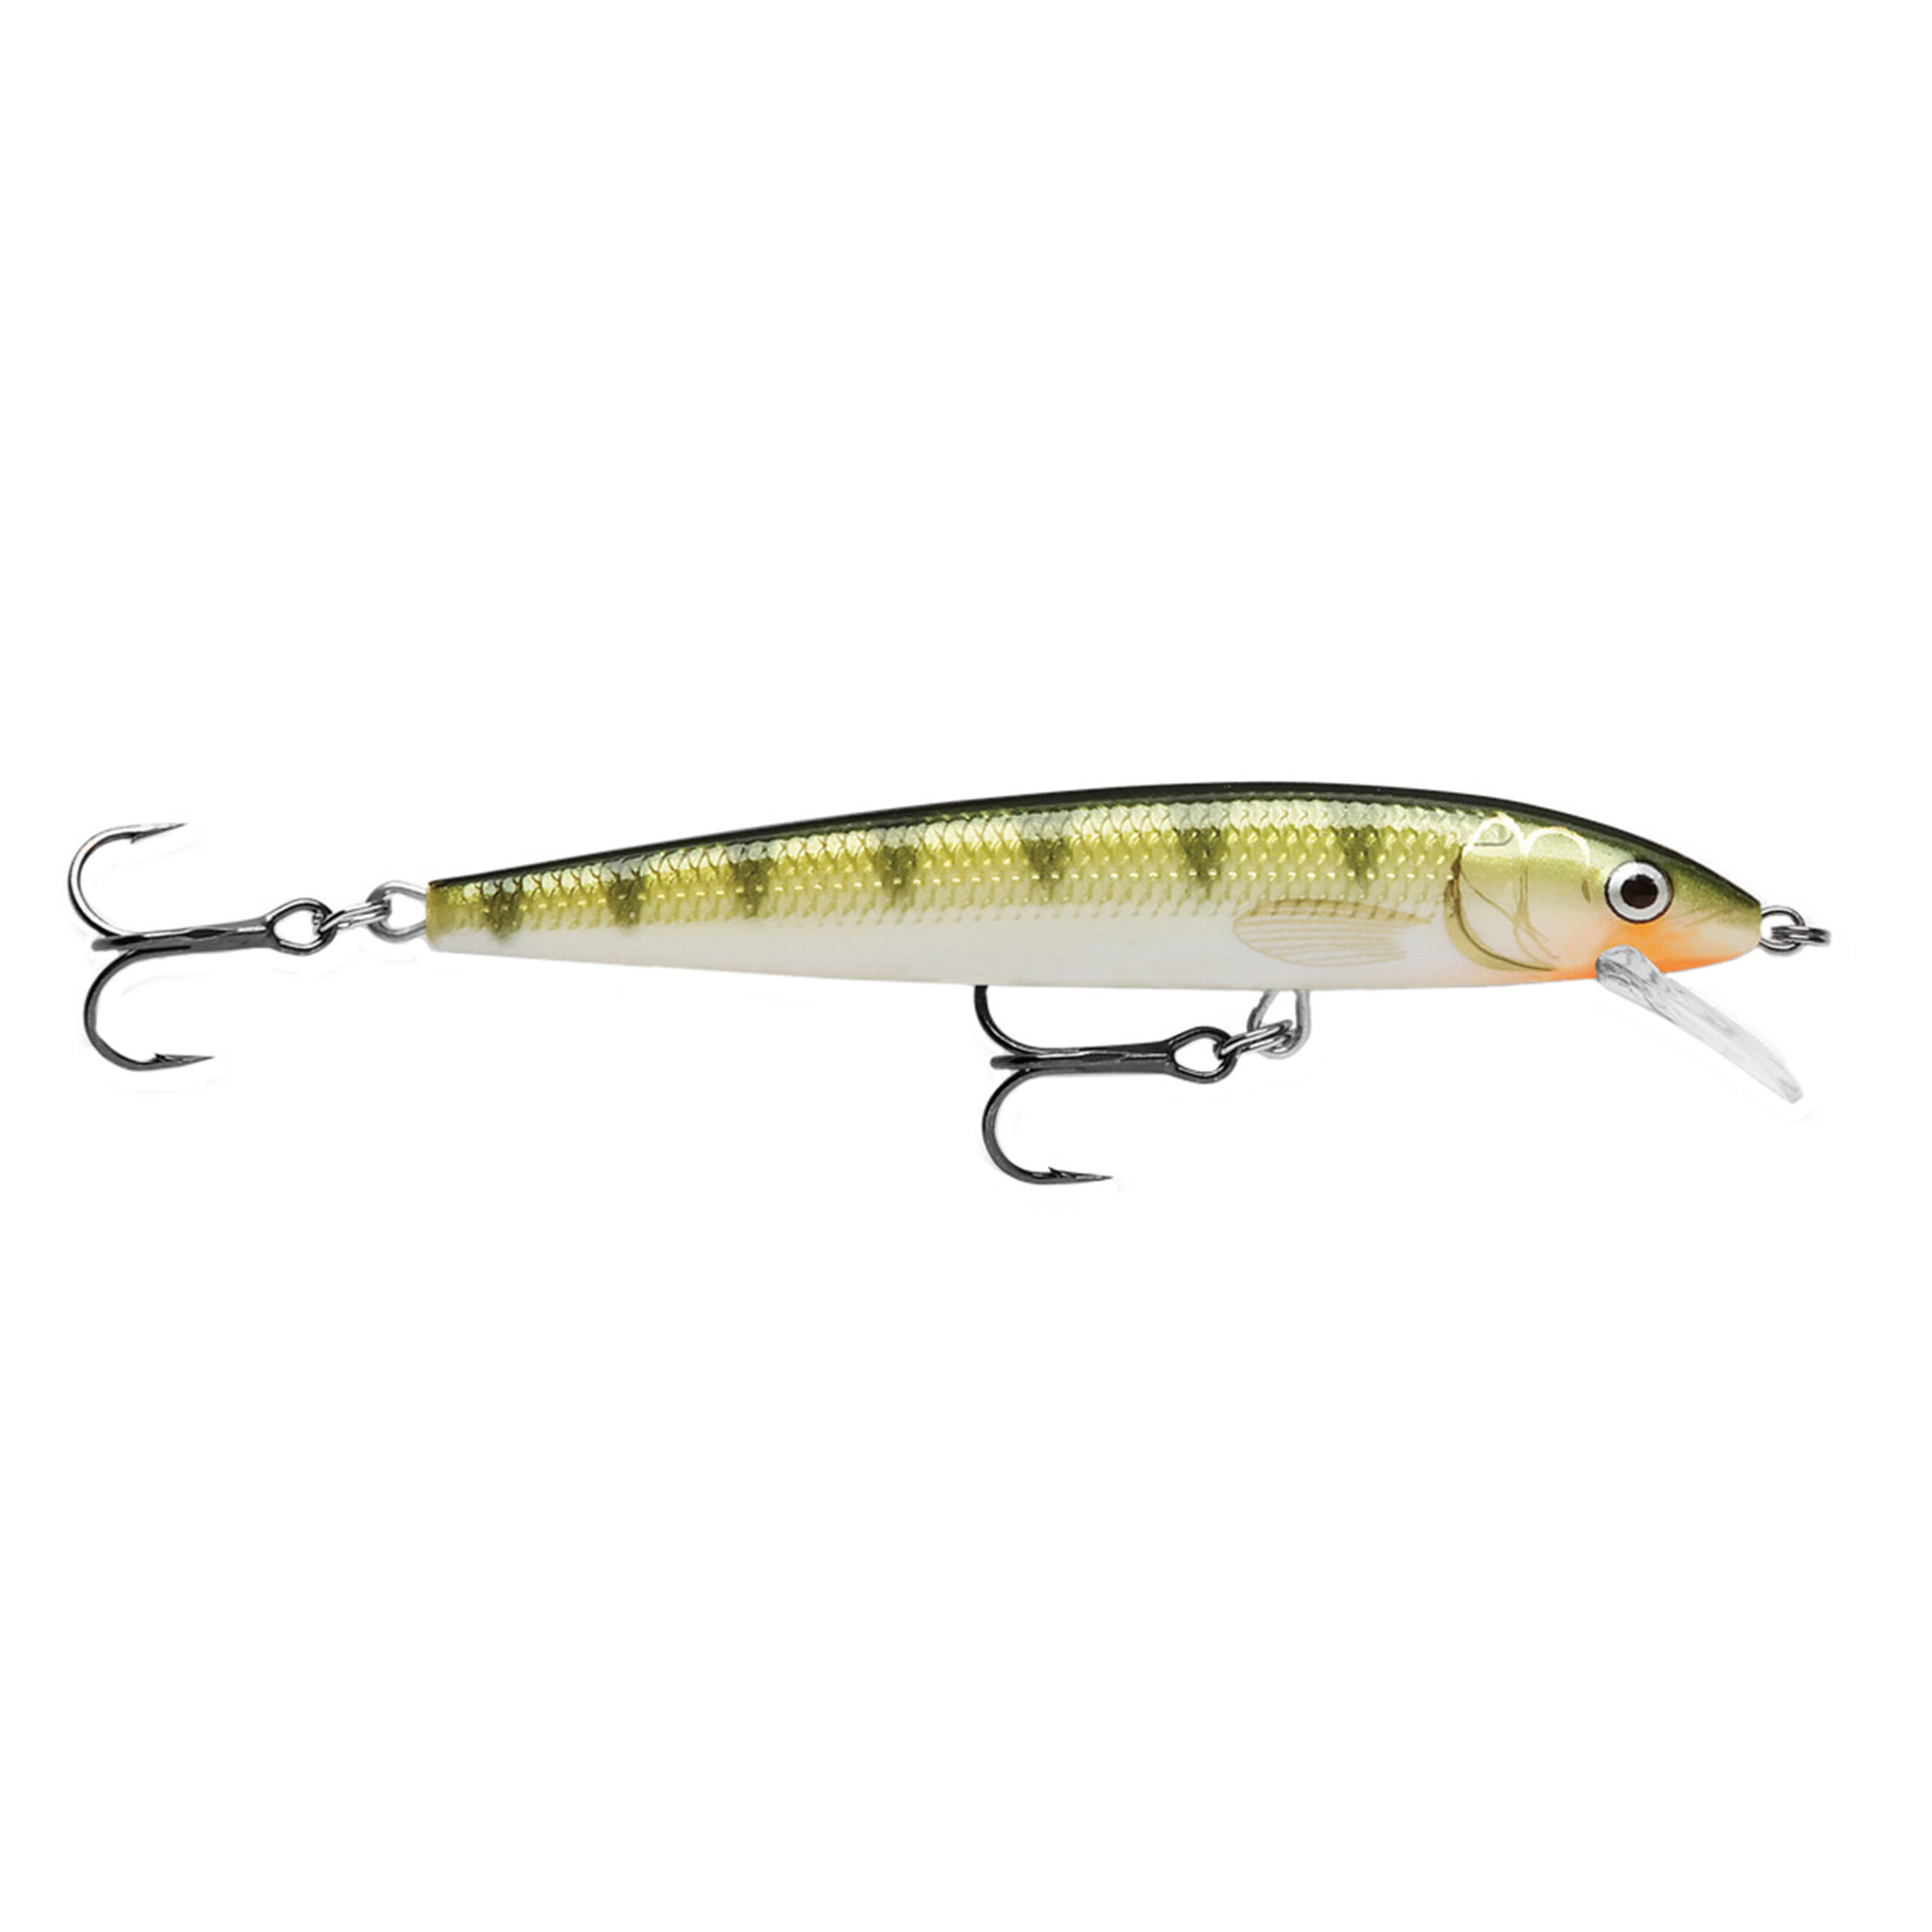 "Rapala Husky Jerk Lure Size 08, 3 1 2"" Length, 4'6' Depth, 2 Number 6 Treble Hooks, Yellow Perch, Per 1 by Rapala"